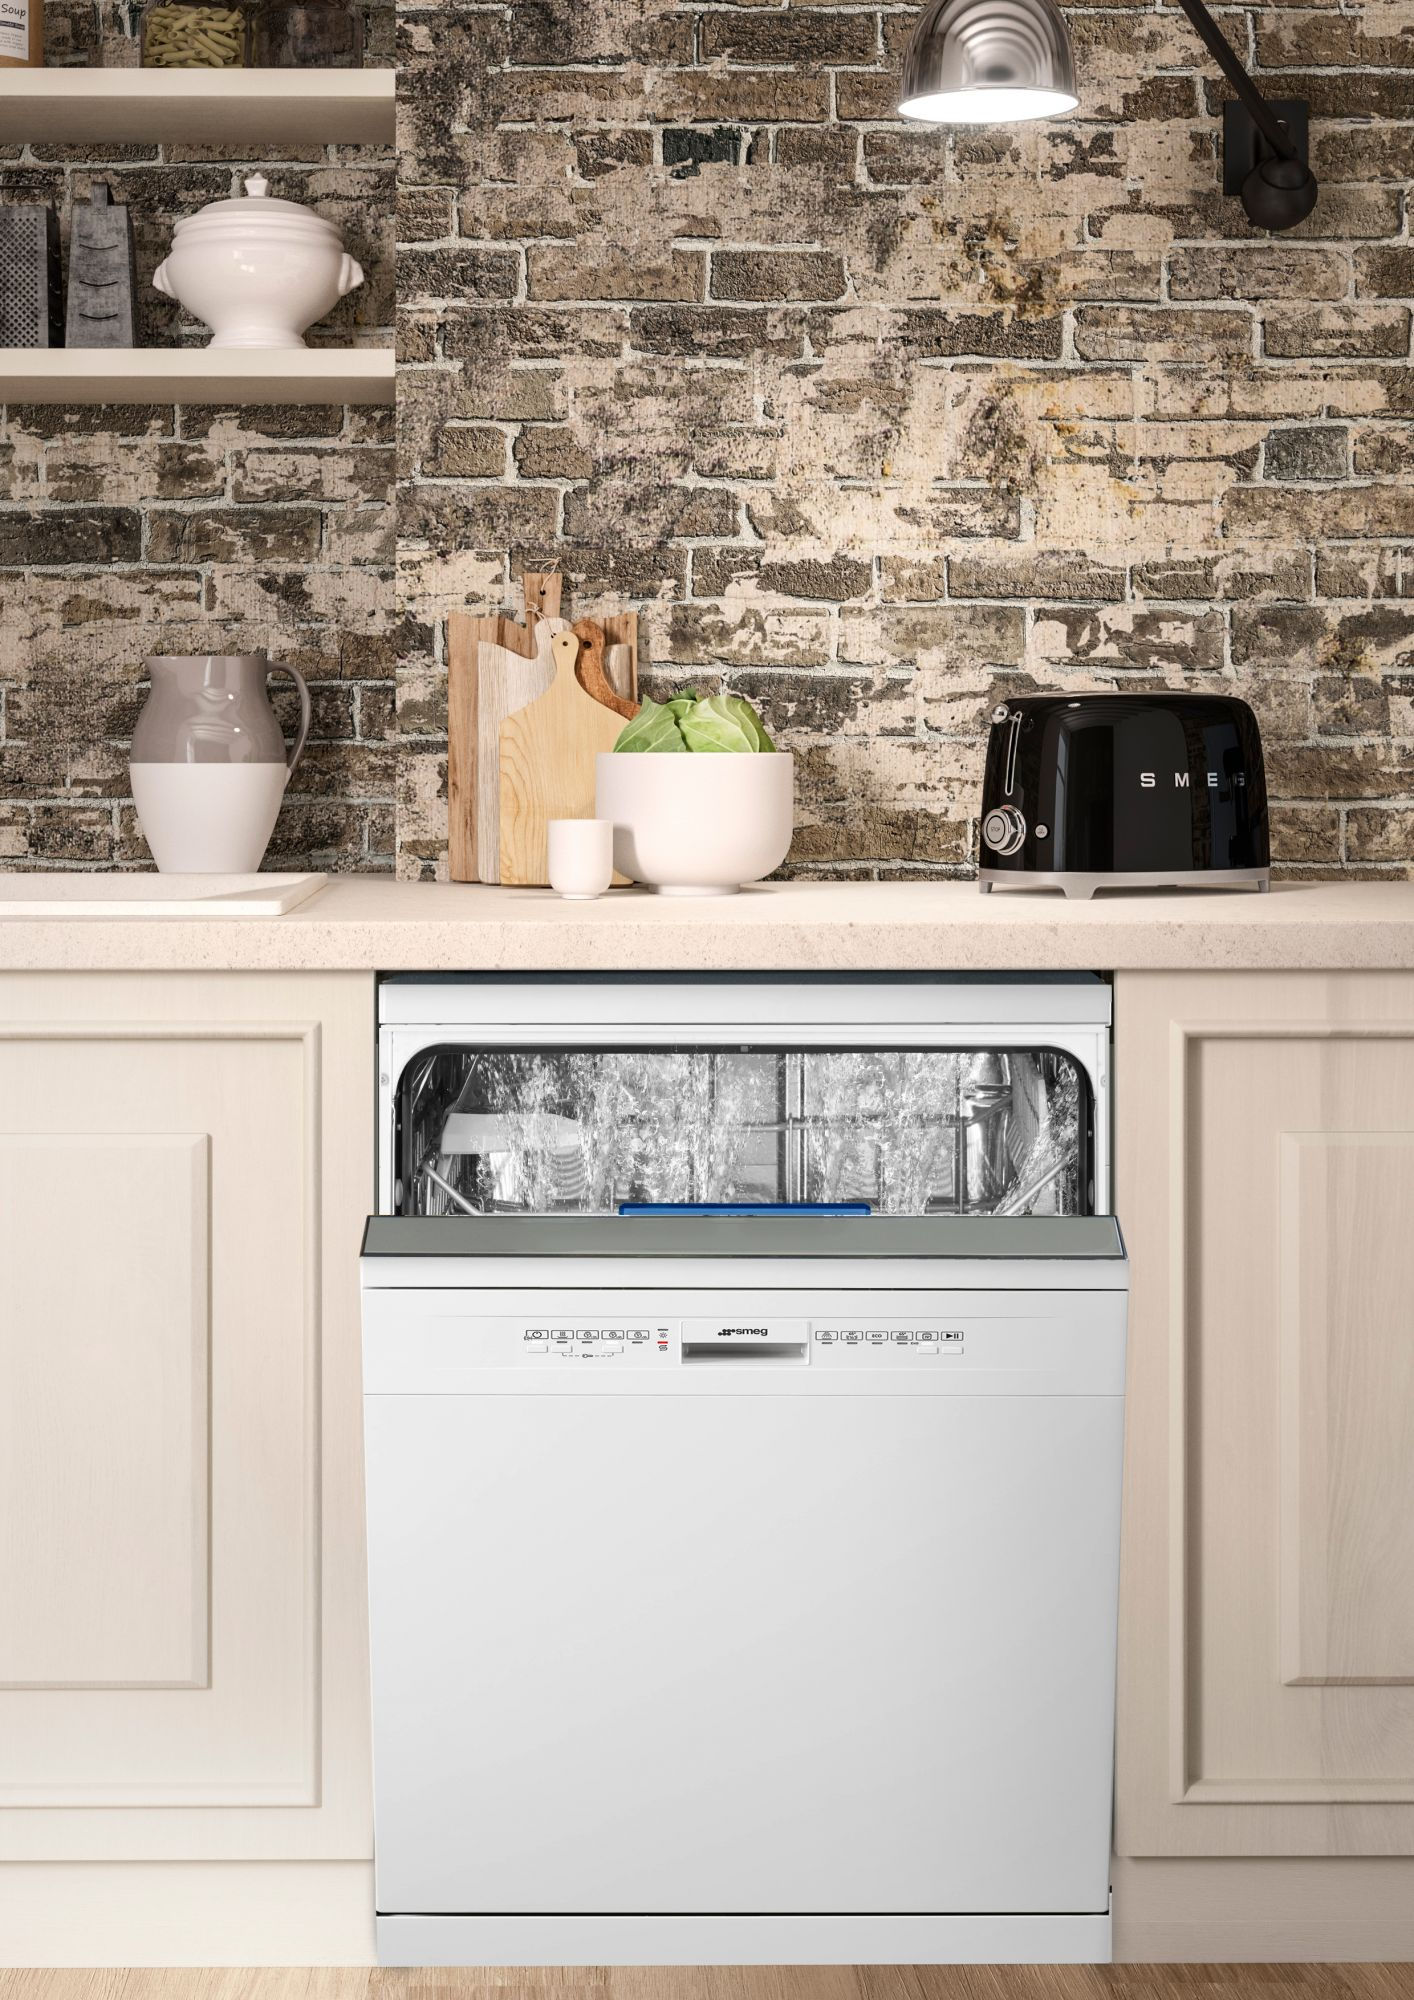 3 Reasons Why SMEG's Free-Standing Dishwasher Is The Perfect Addition To Your Kitchen This Quarantine